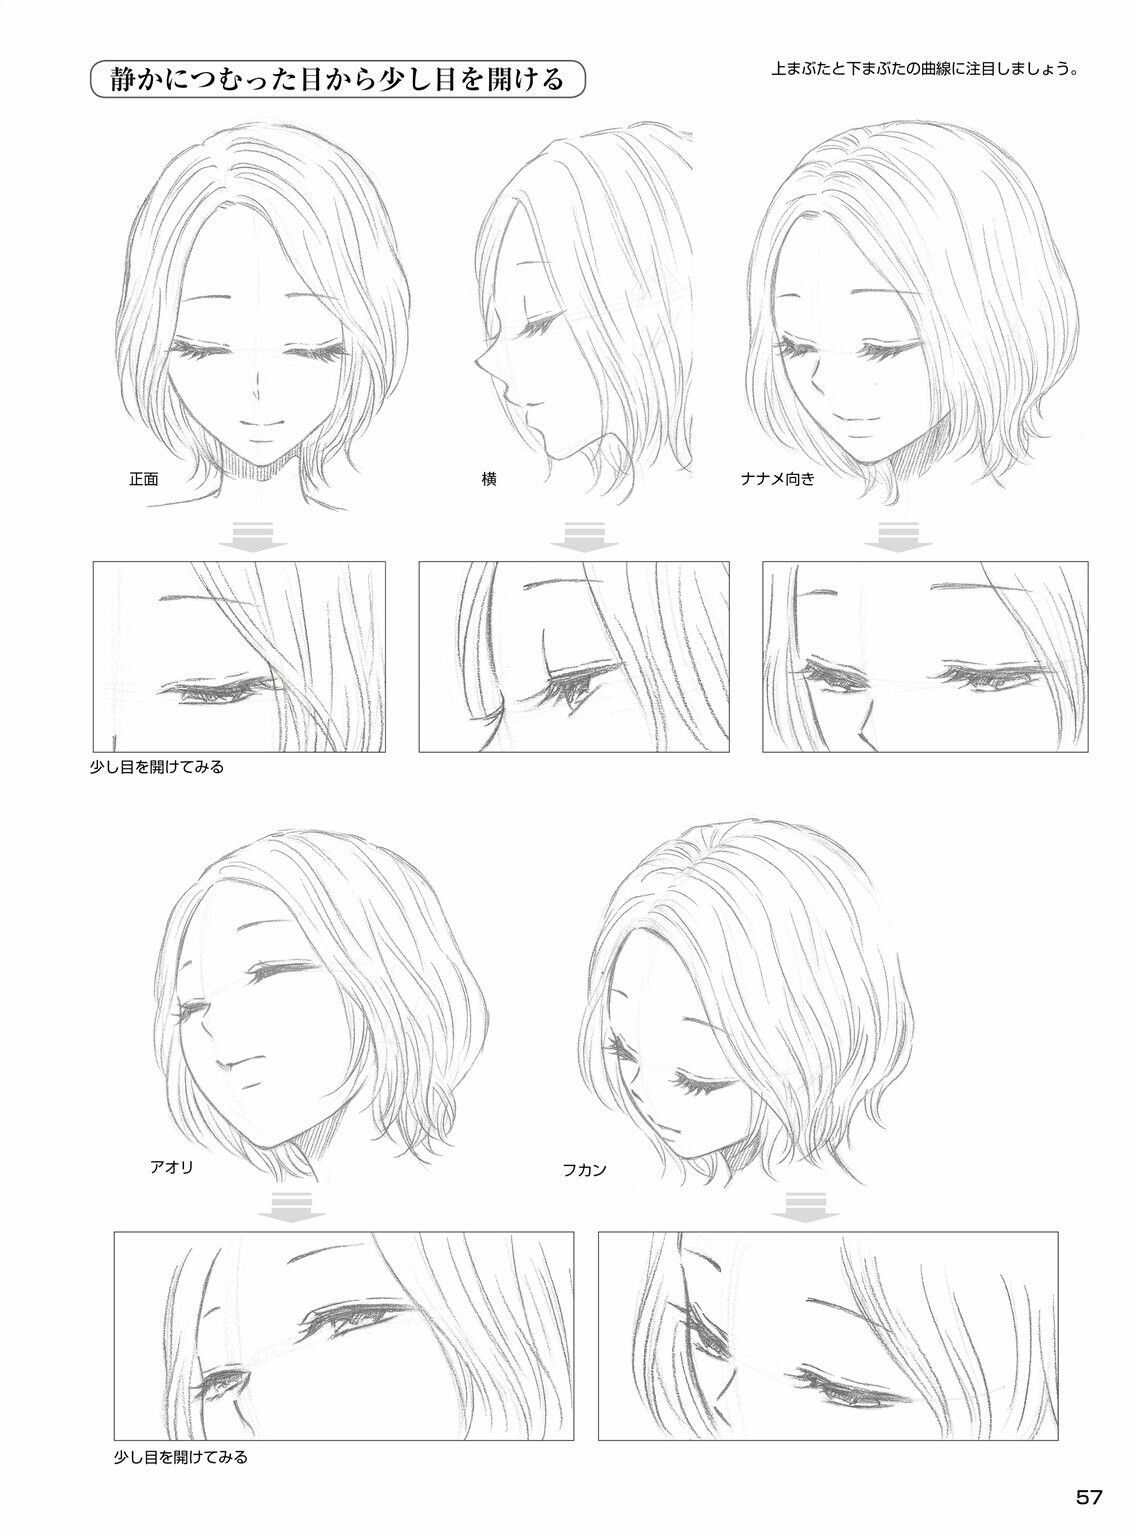 Eye drawings drawing faces manga drawing drawing stuff body reference drawing reference draw eyes drawing guide character drawing